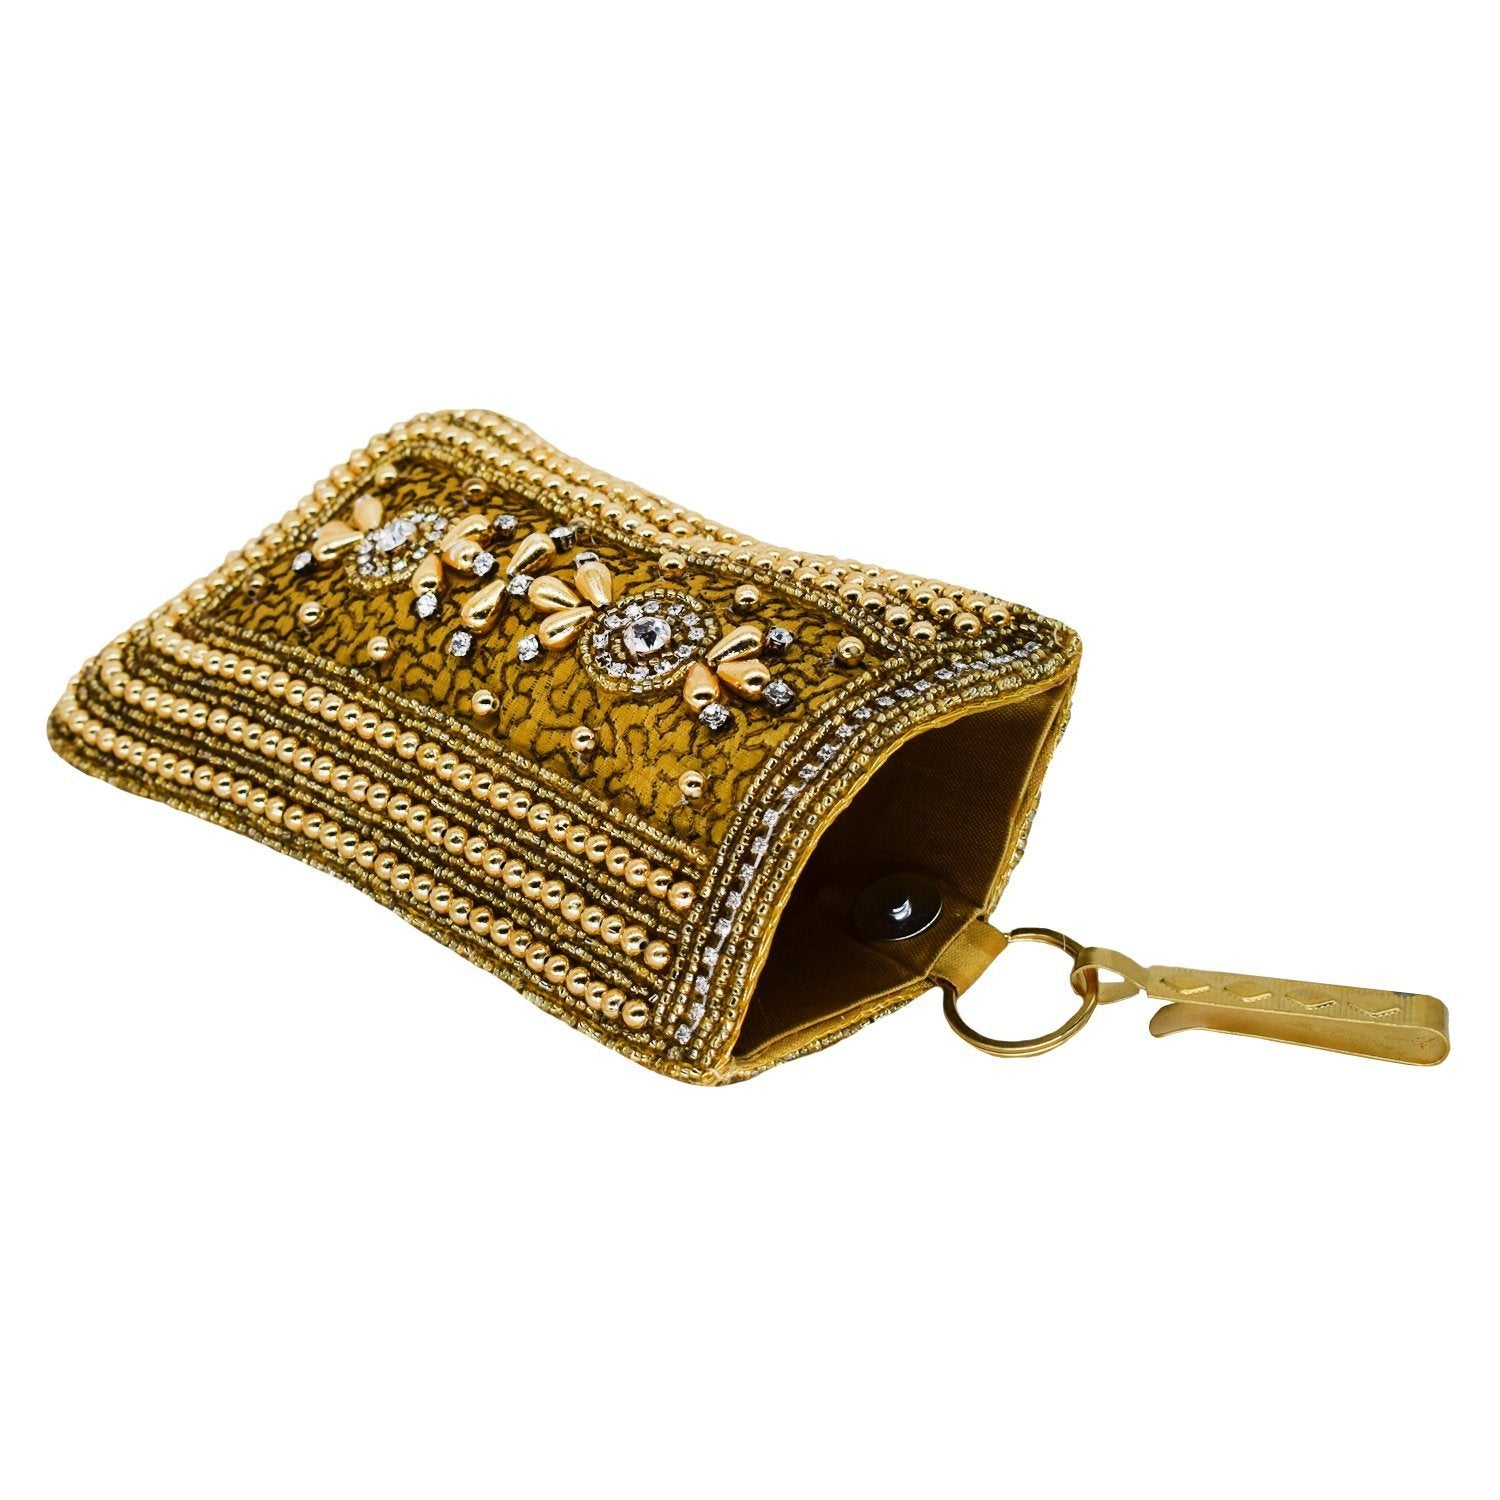 Beads & Pearl Clutch Raw Silk Mobile Pouch Waist Clip - Bagaholics Gift